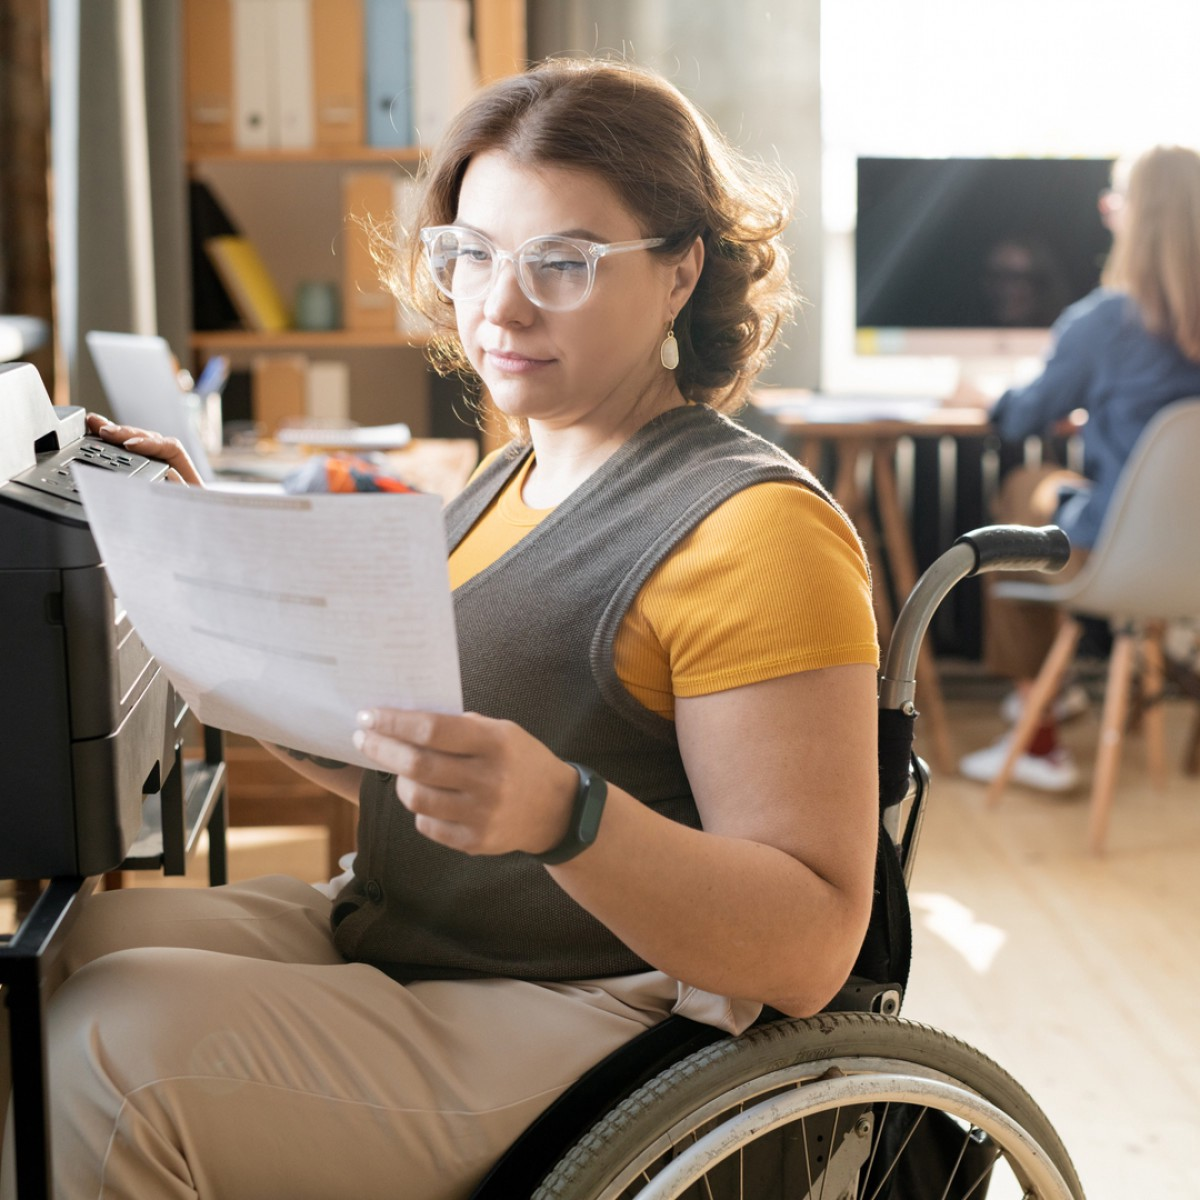 Woman with short brown hair sits in a wheelchair looking at a piece of paper, with her other hand on a desk she is sitting in front of with a printer.